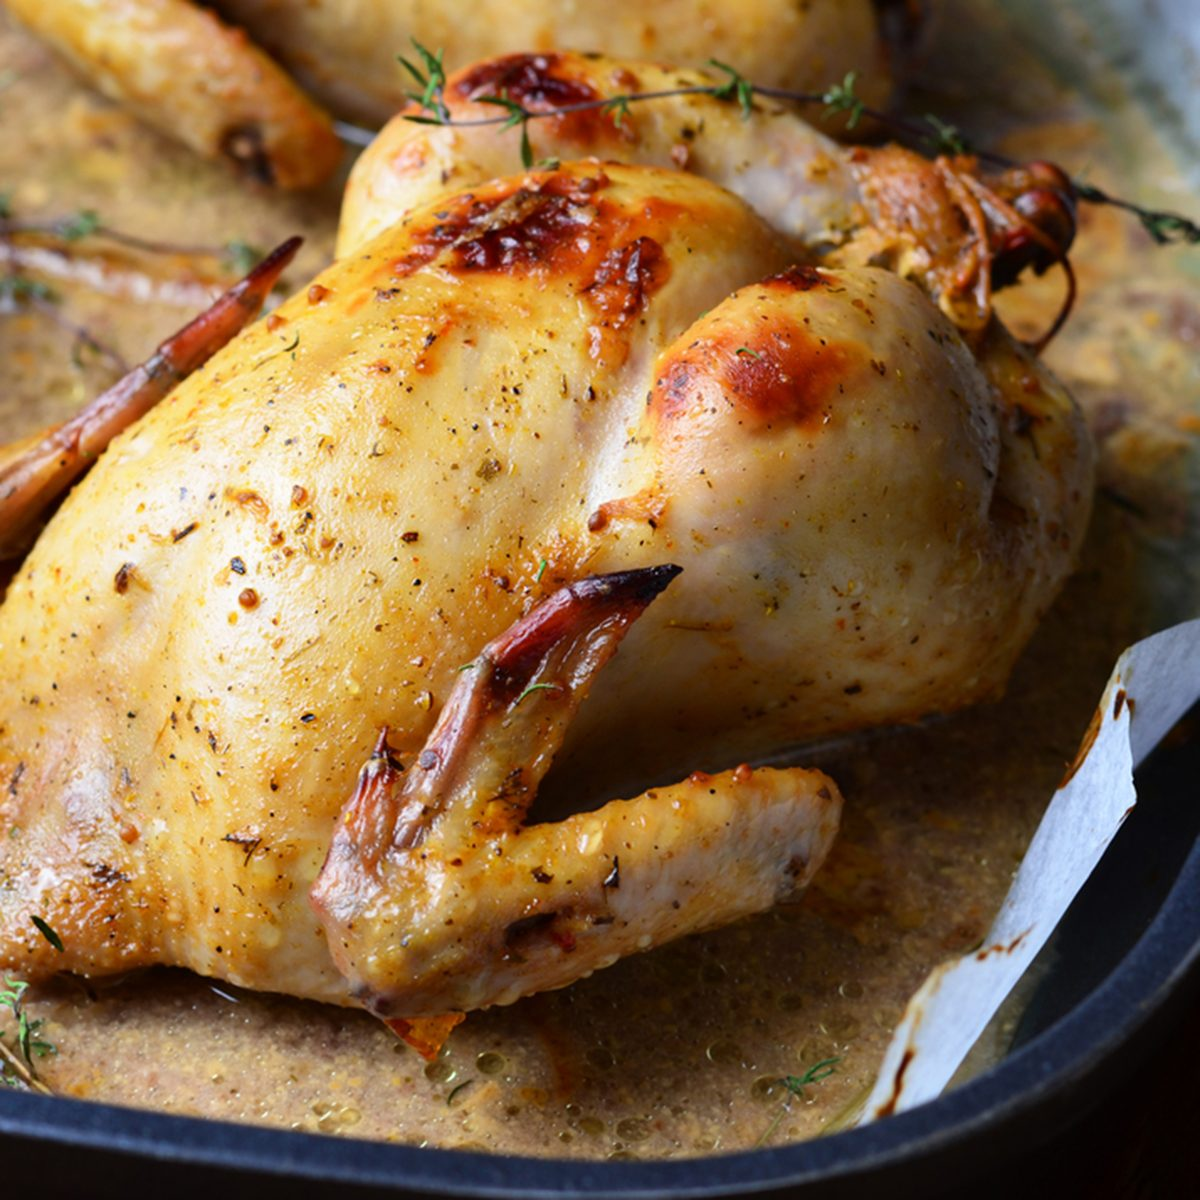 Whole Roasted Chicken with sauce on baking tray